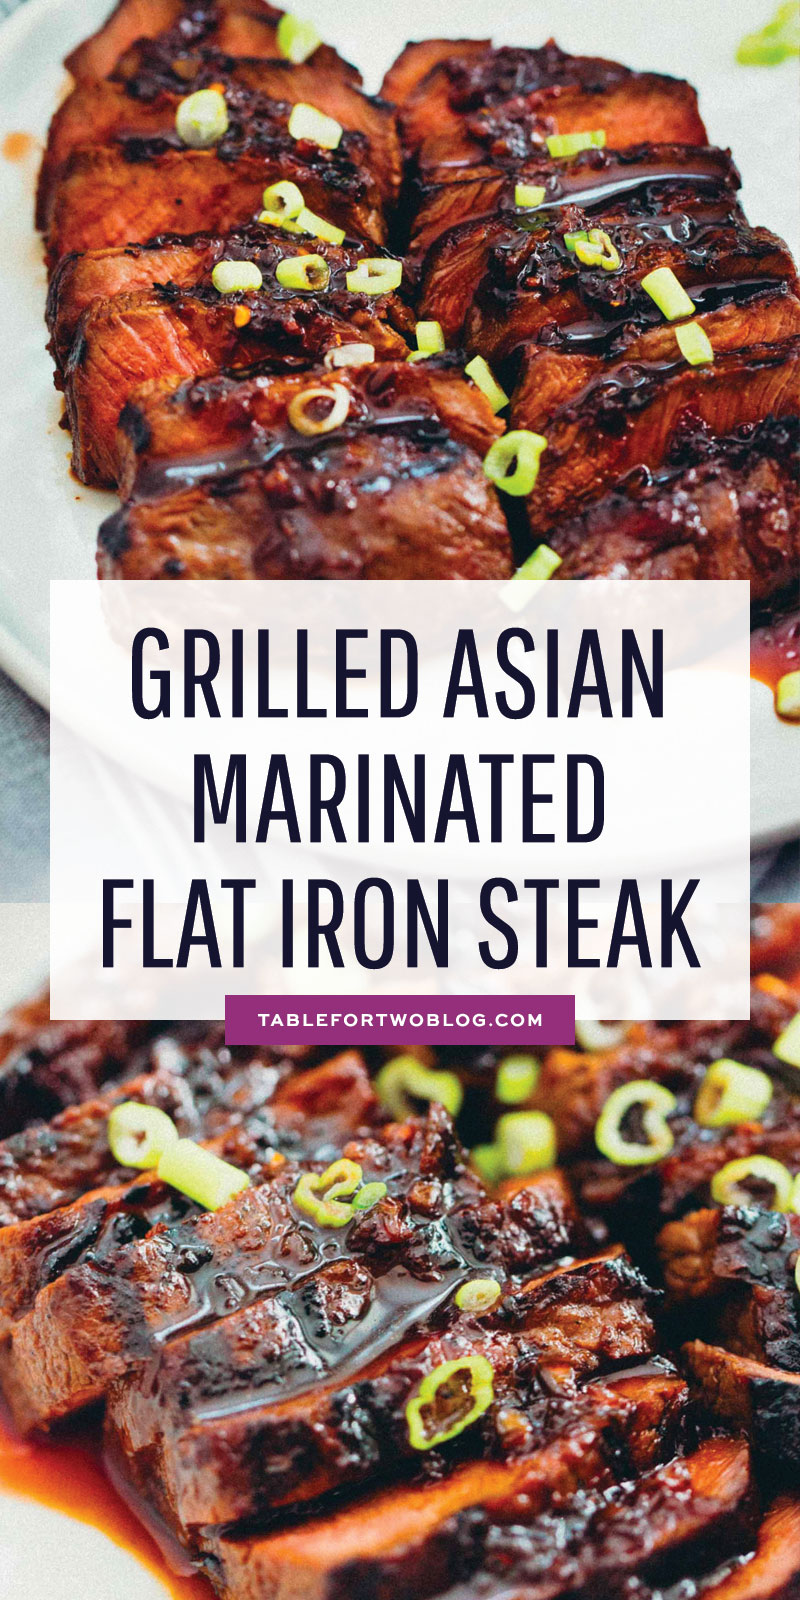 This grilled Asian marinated flat iron steak is a quick weeknight meal when you're looking to change up traditional grilled steak! #grilling #steak #flatironsteak #asianmarinade